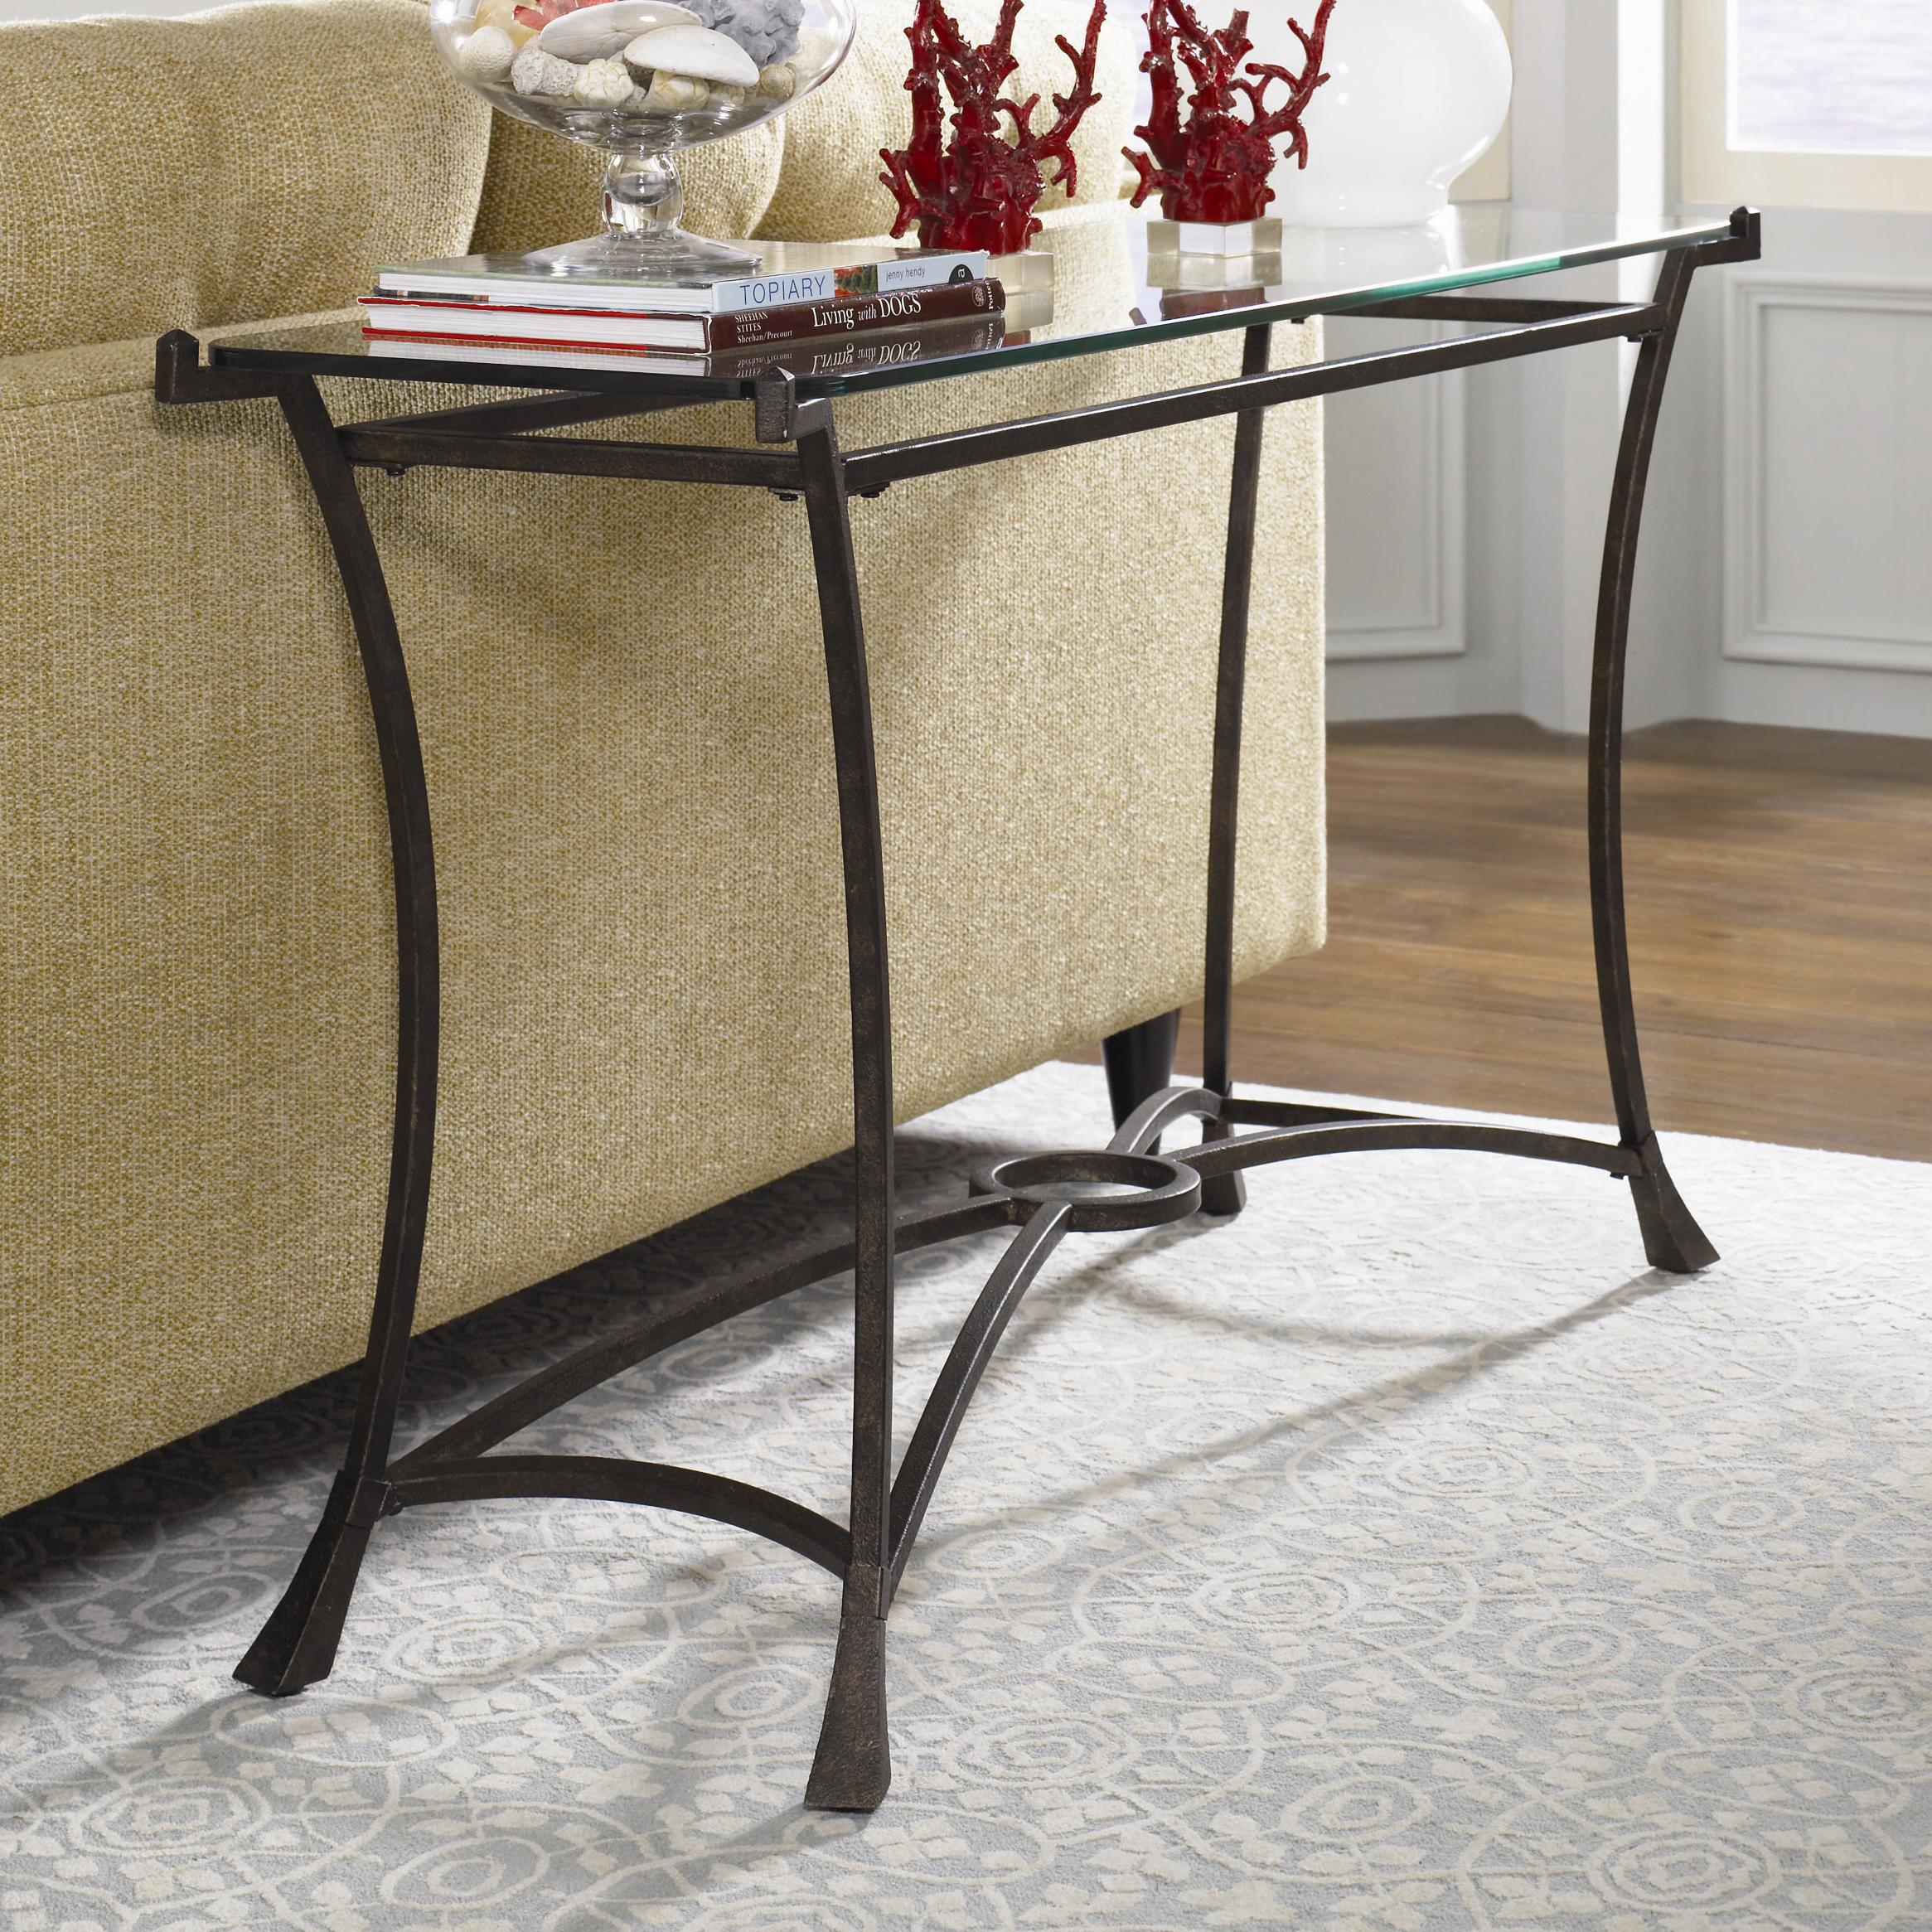 mid century modern side table the terrific free black wood and glass sofa tables contemporary astounding design strong durable wrought iron base legs clear solid top surface